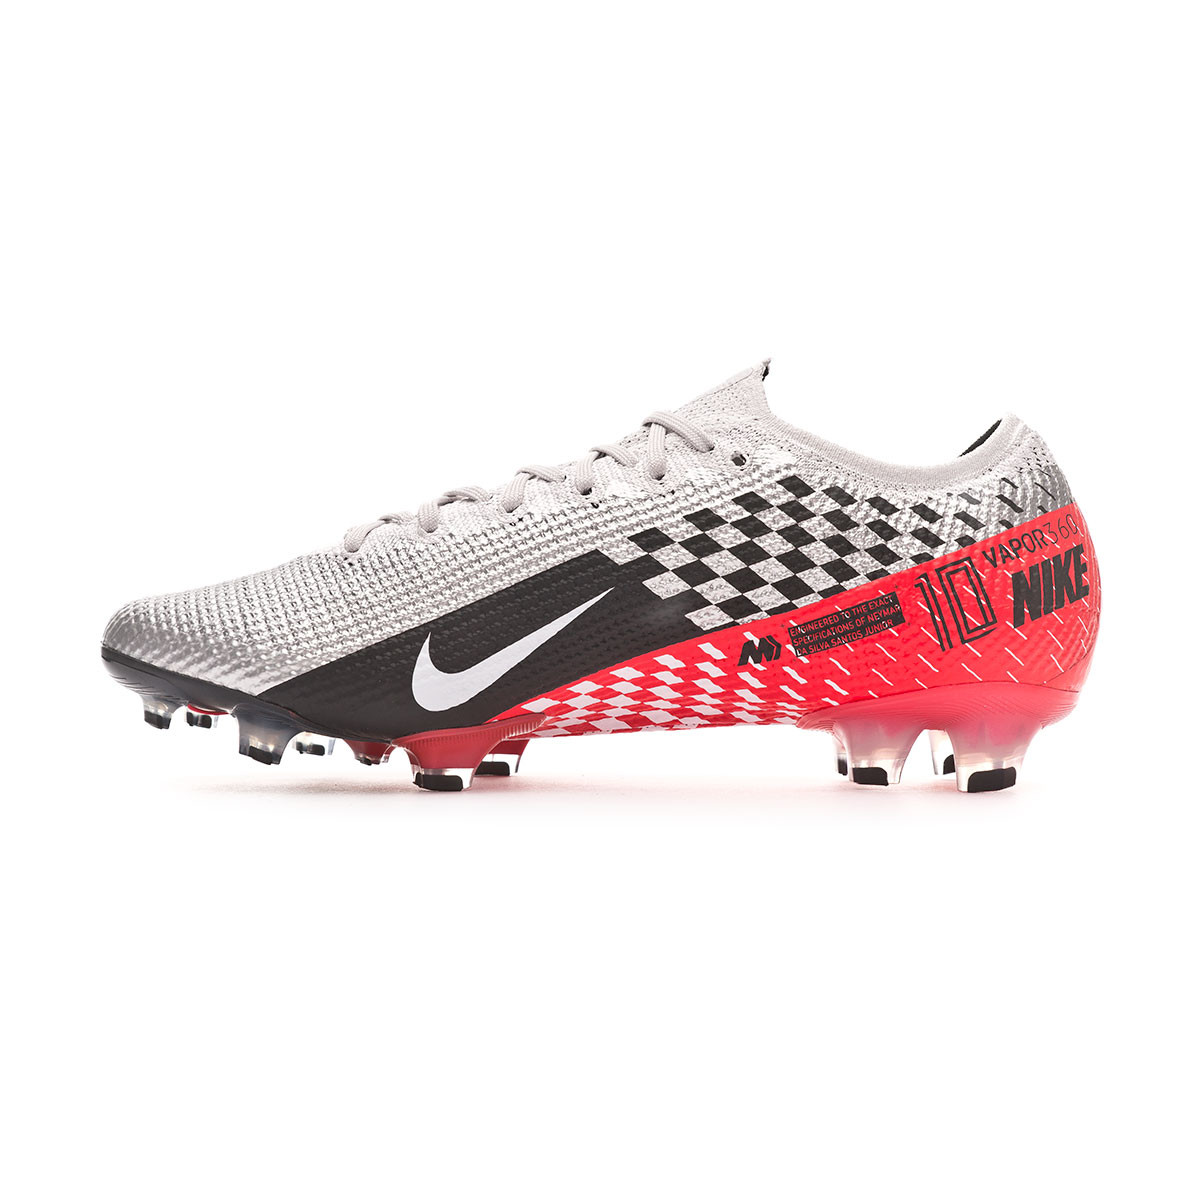 2scarpe calcio junior nike mercurial